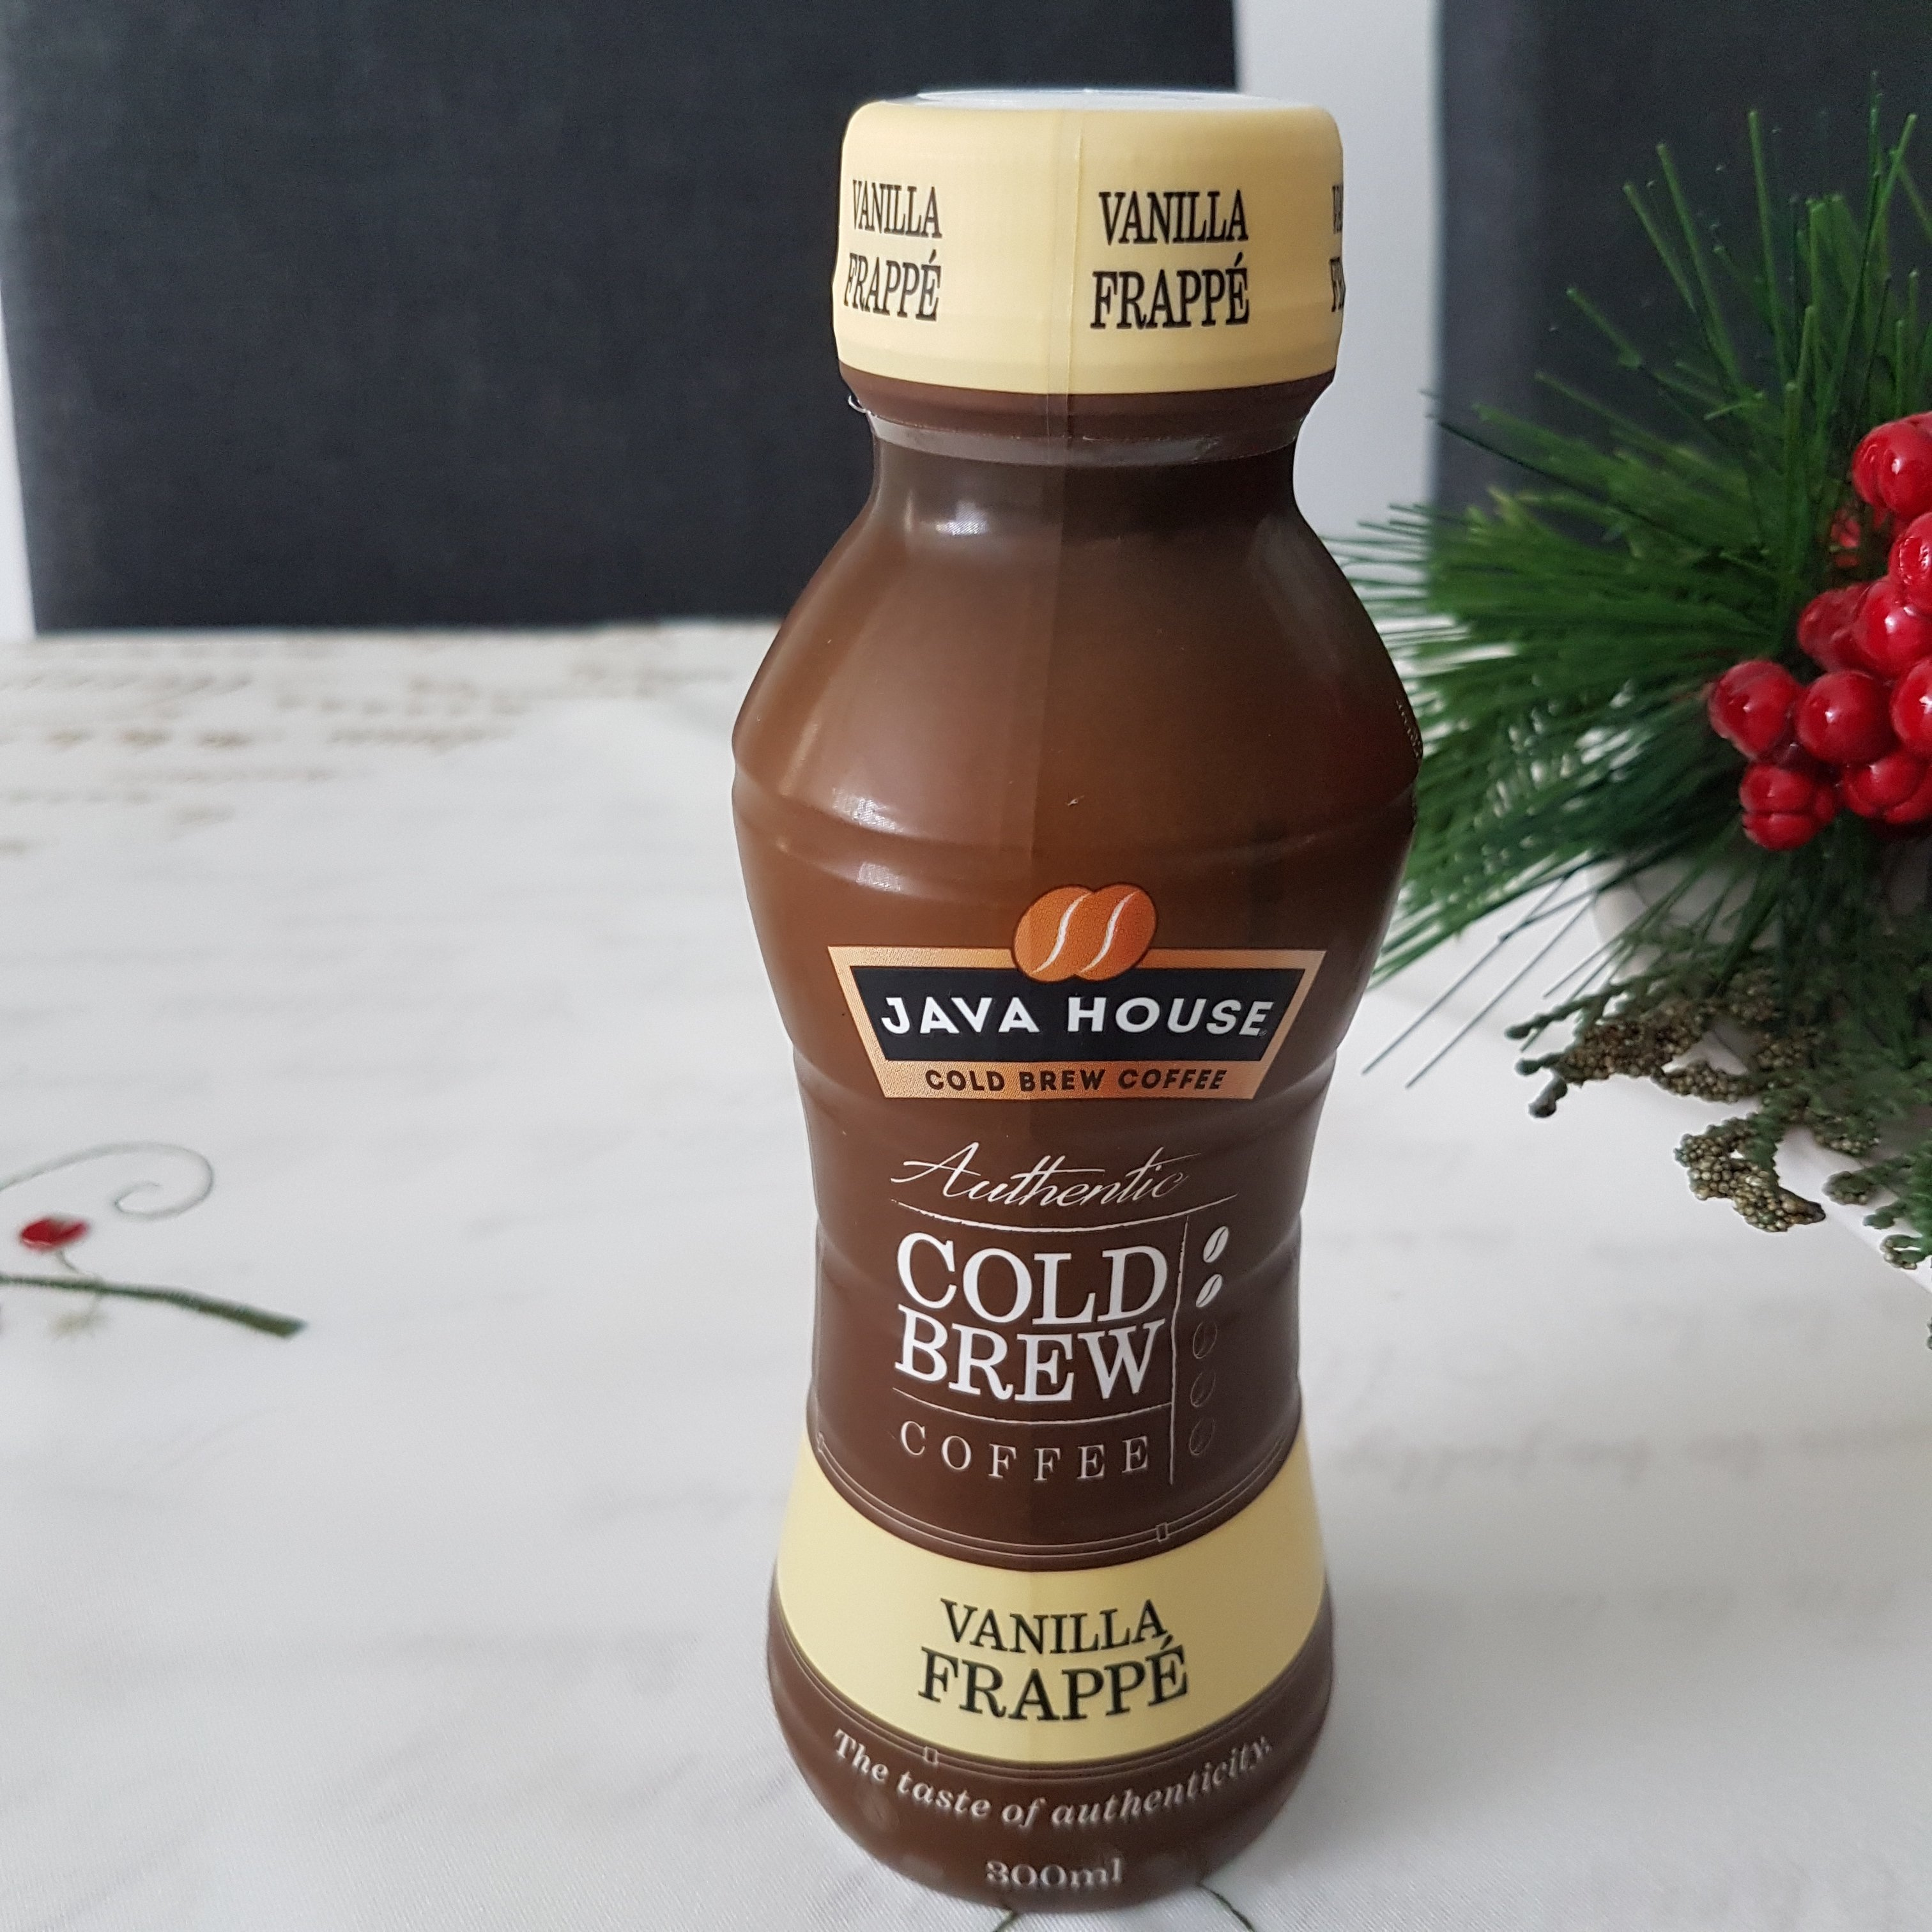 Java House Cold Brew Coffee - Vanilla Frappé - itstartswithacoffee.com #coffee #frappe #coldbrew